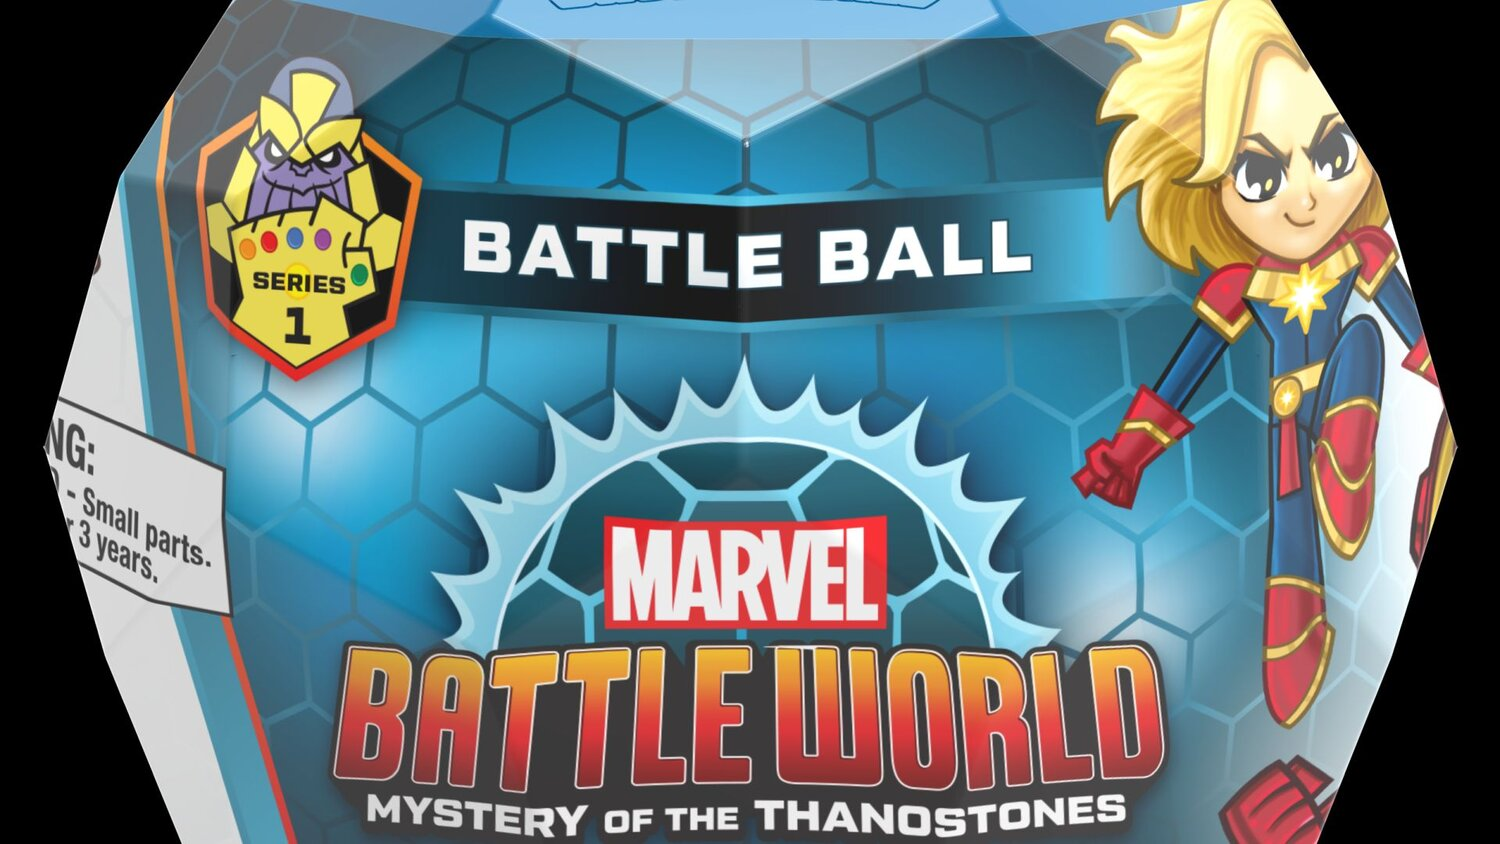 Marvel and Funko Unveil New Collectible Tabletop Game MARVEL BATTLEWORLD: MYSTERY OF THE THANOSTONES — GeekTyrant